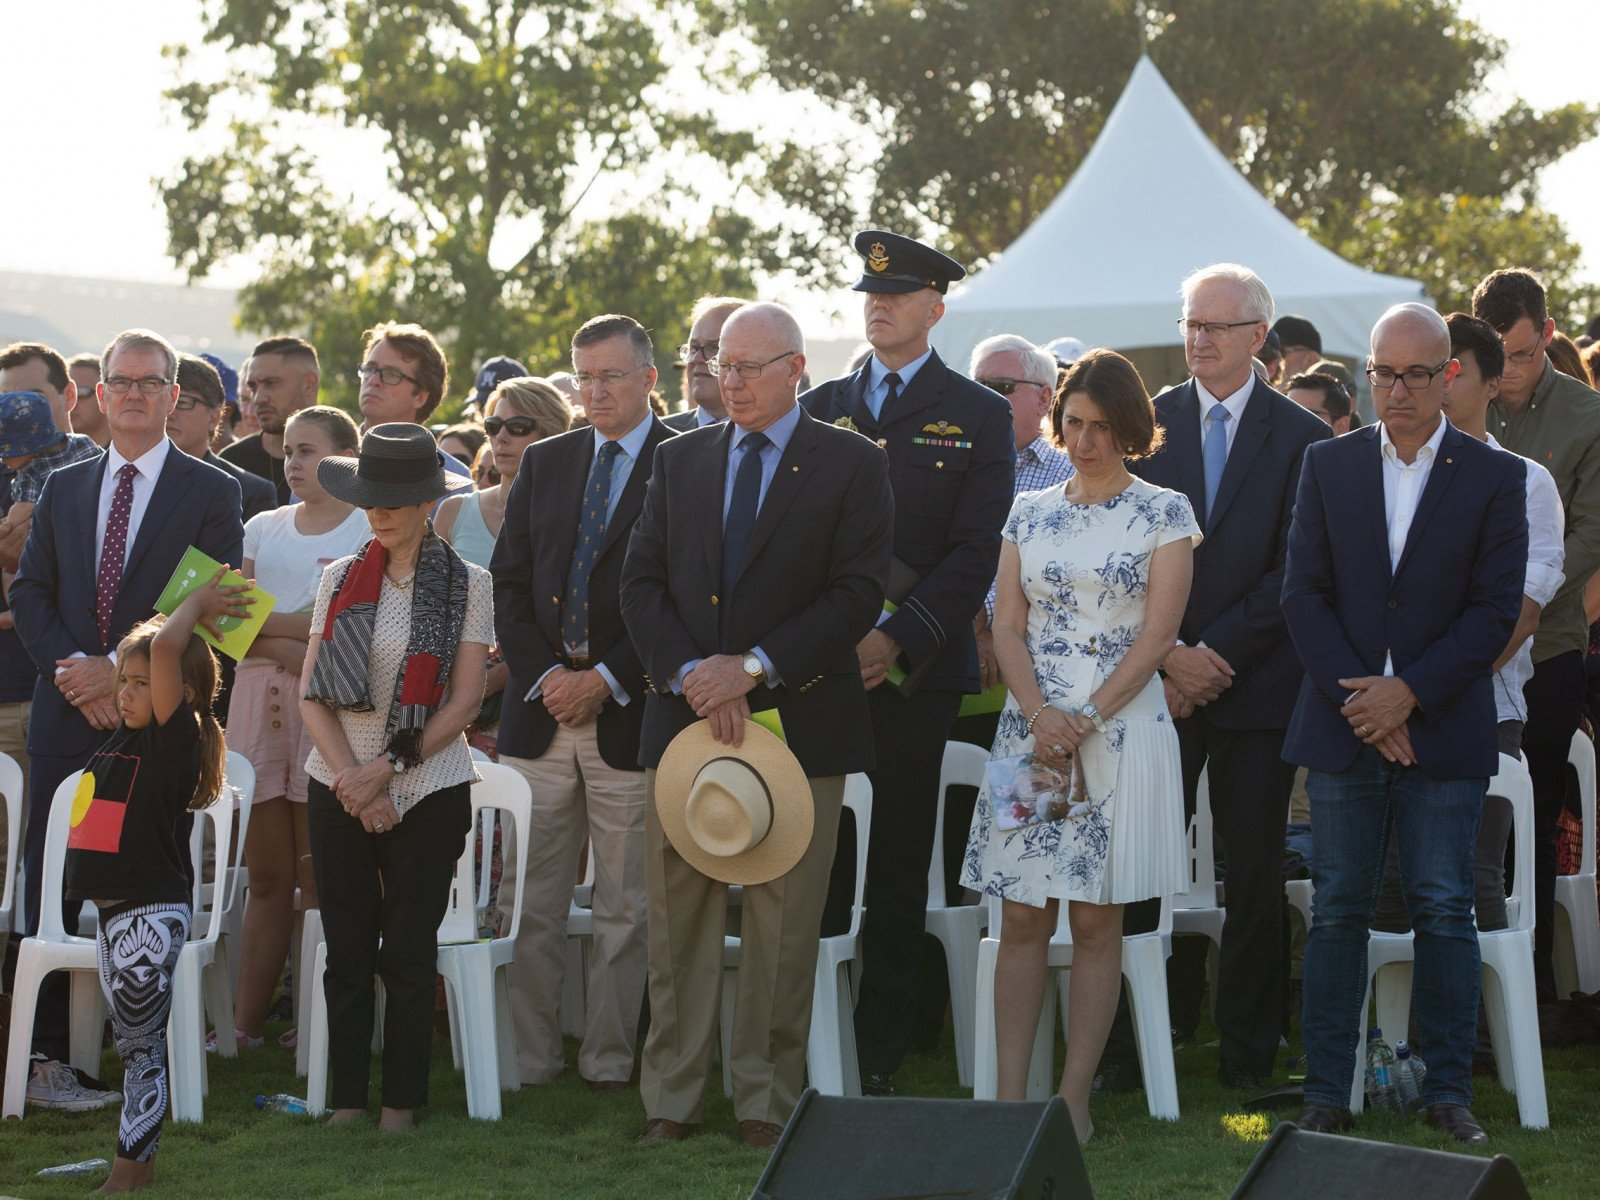 The Governor of NSW and the Premier of NSW at the Wugulora Morning Ceremony